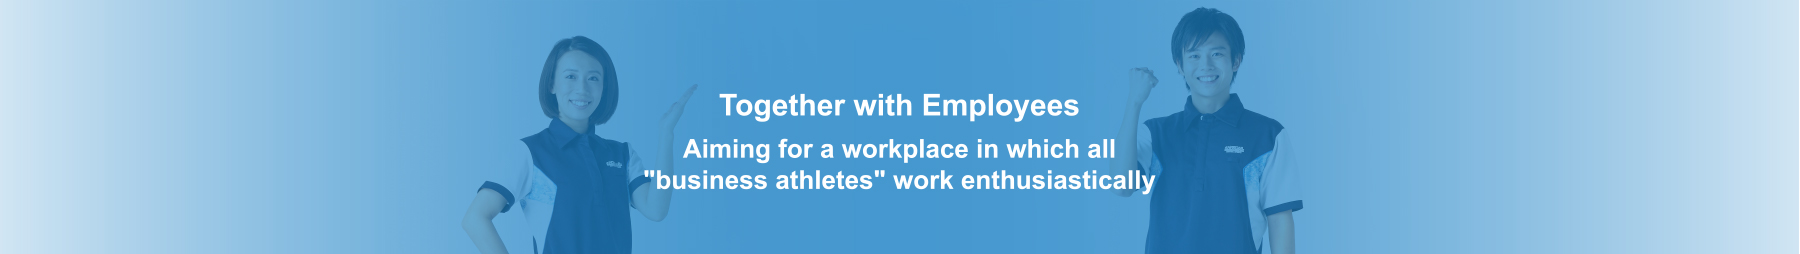 Together with Employees Aiming for a workplace in which all 'business athletes' work enthousiastically